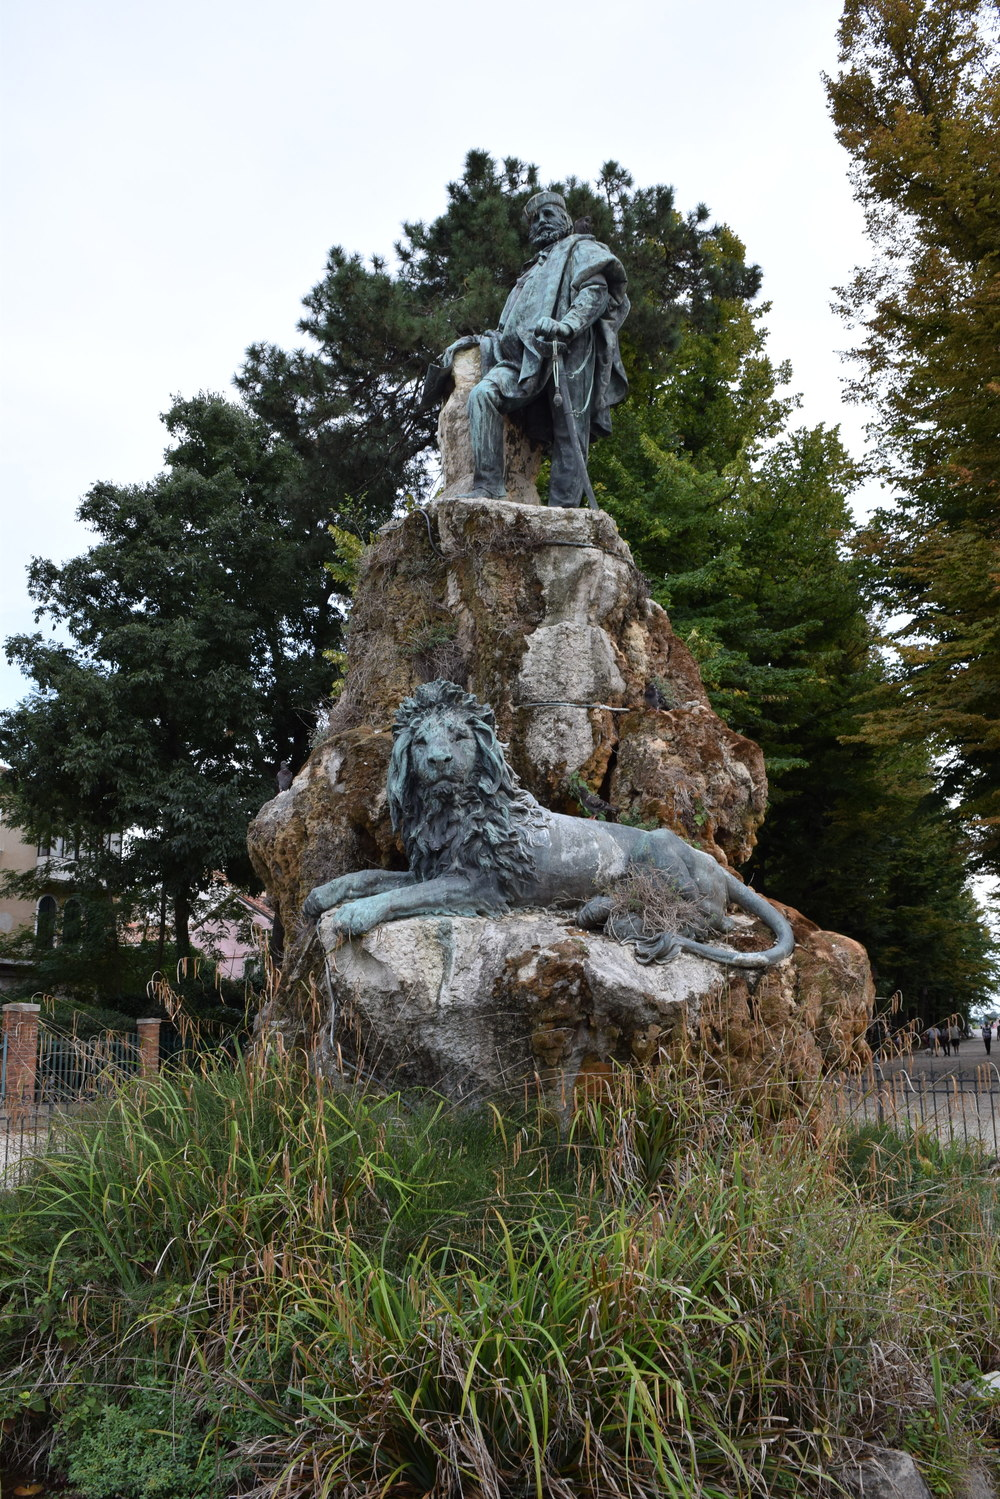 Statue at the edge of the Giardini Pubblici